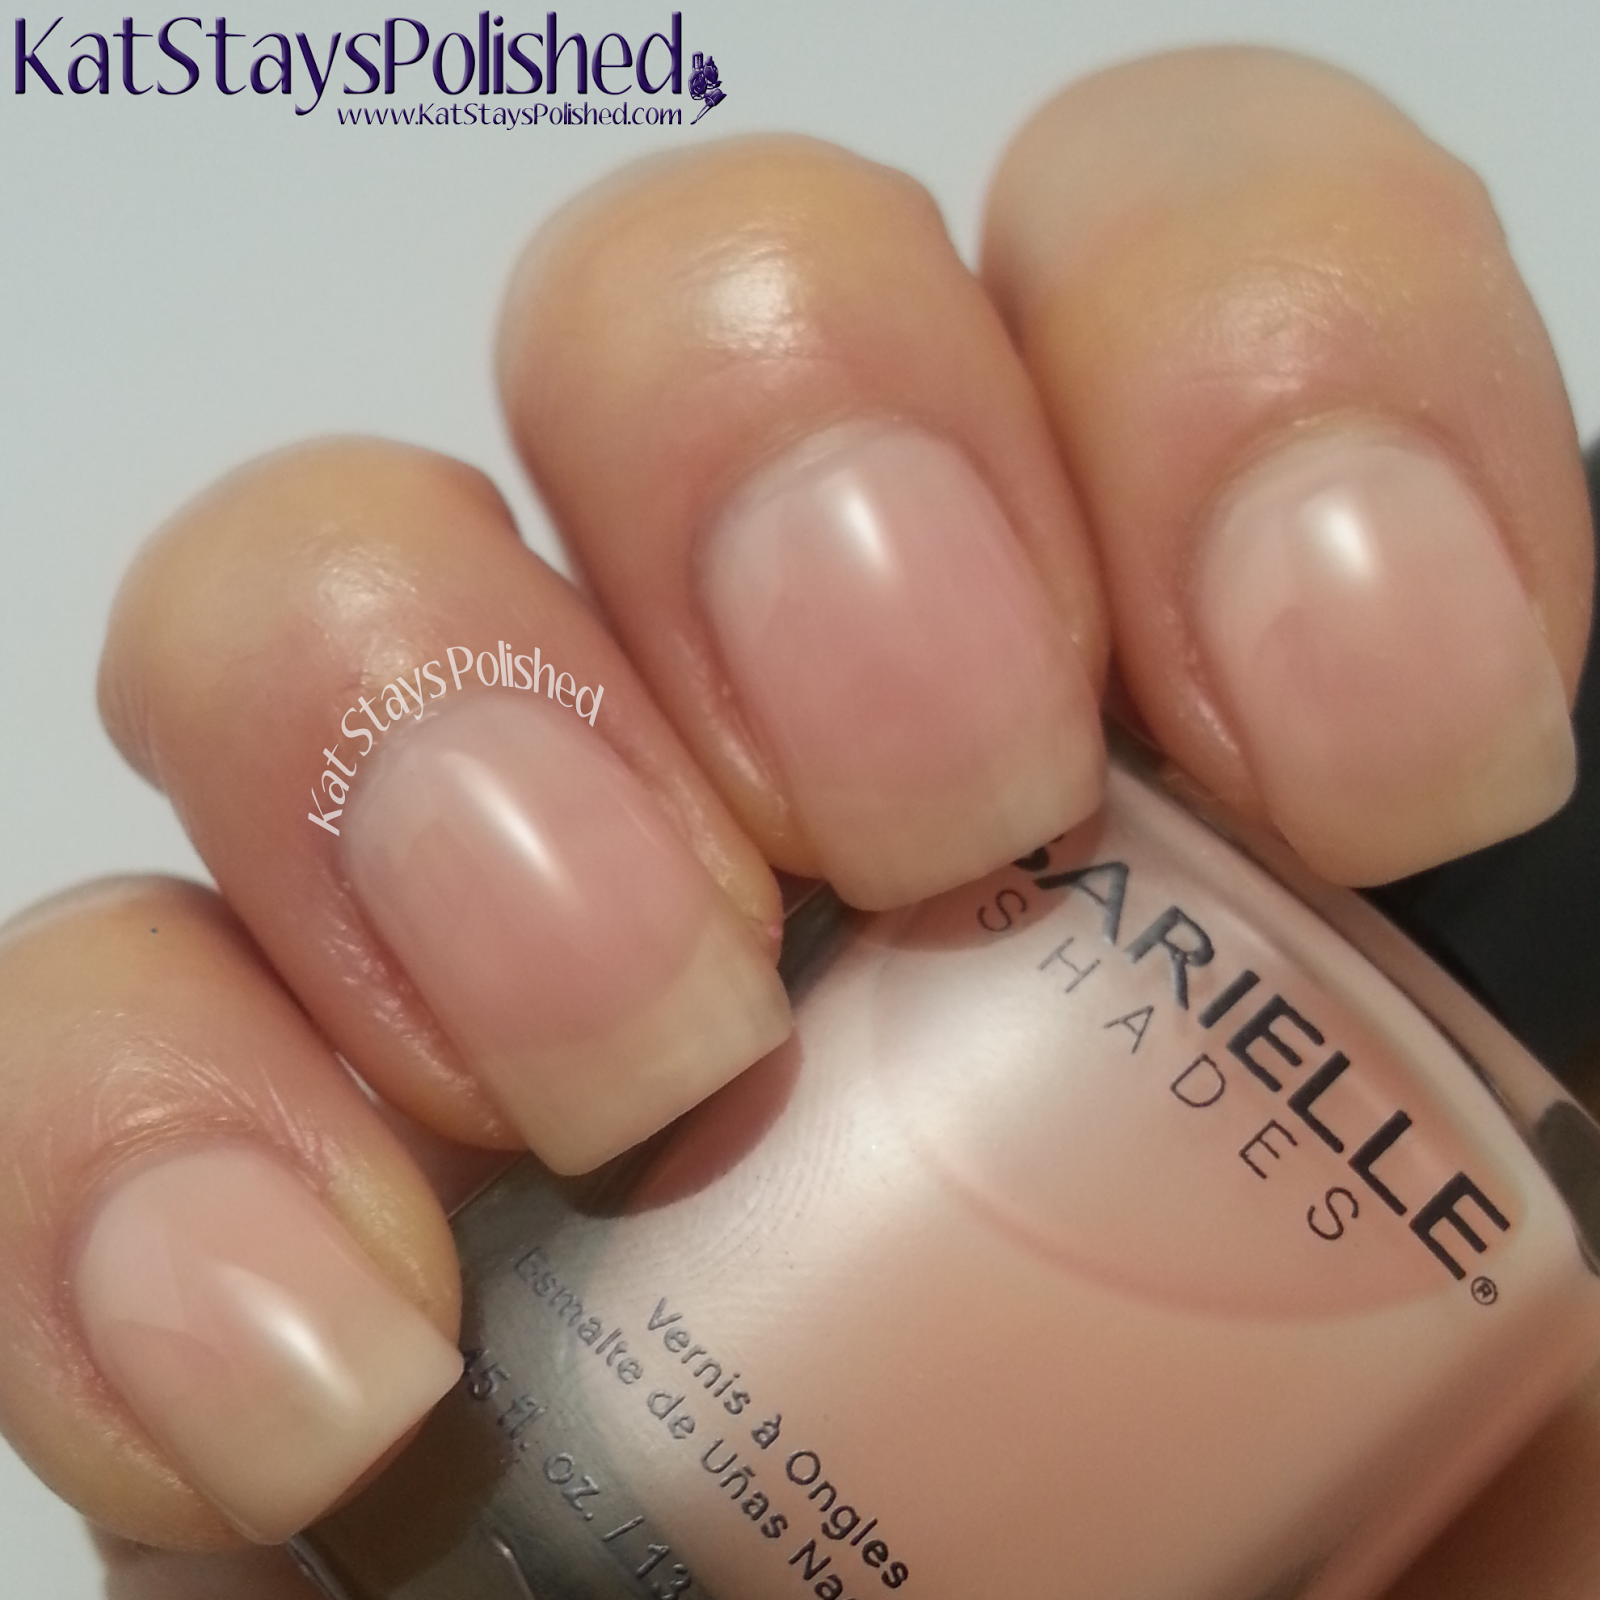 Barielle Spring Velvets 2014 - Cream 'N Sugar | Kat Stays Polished